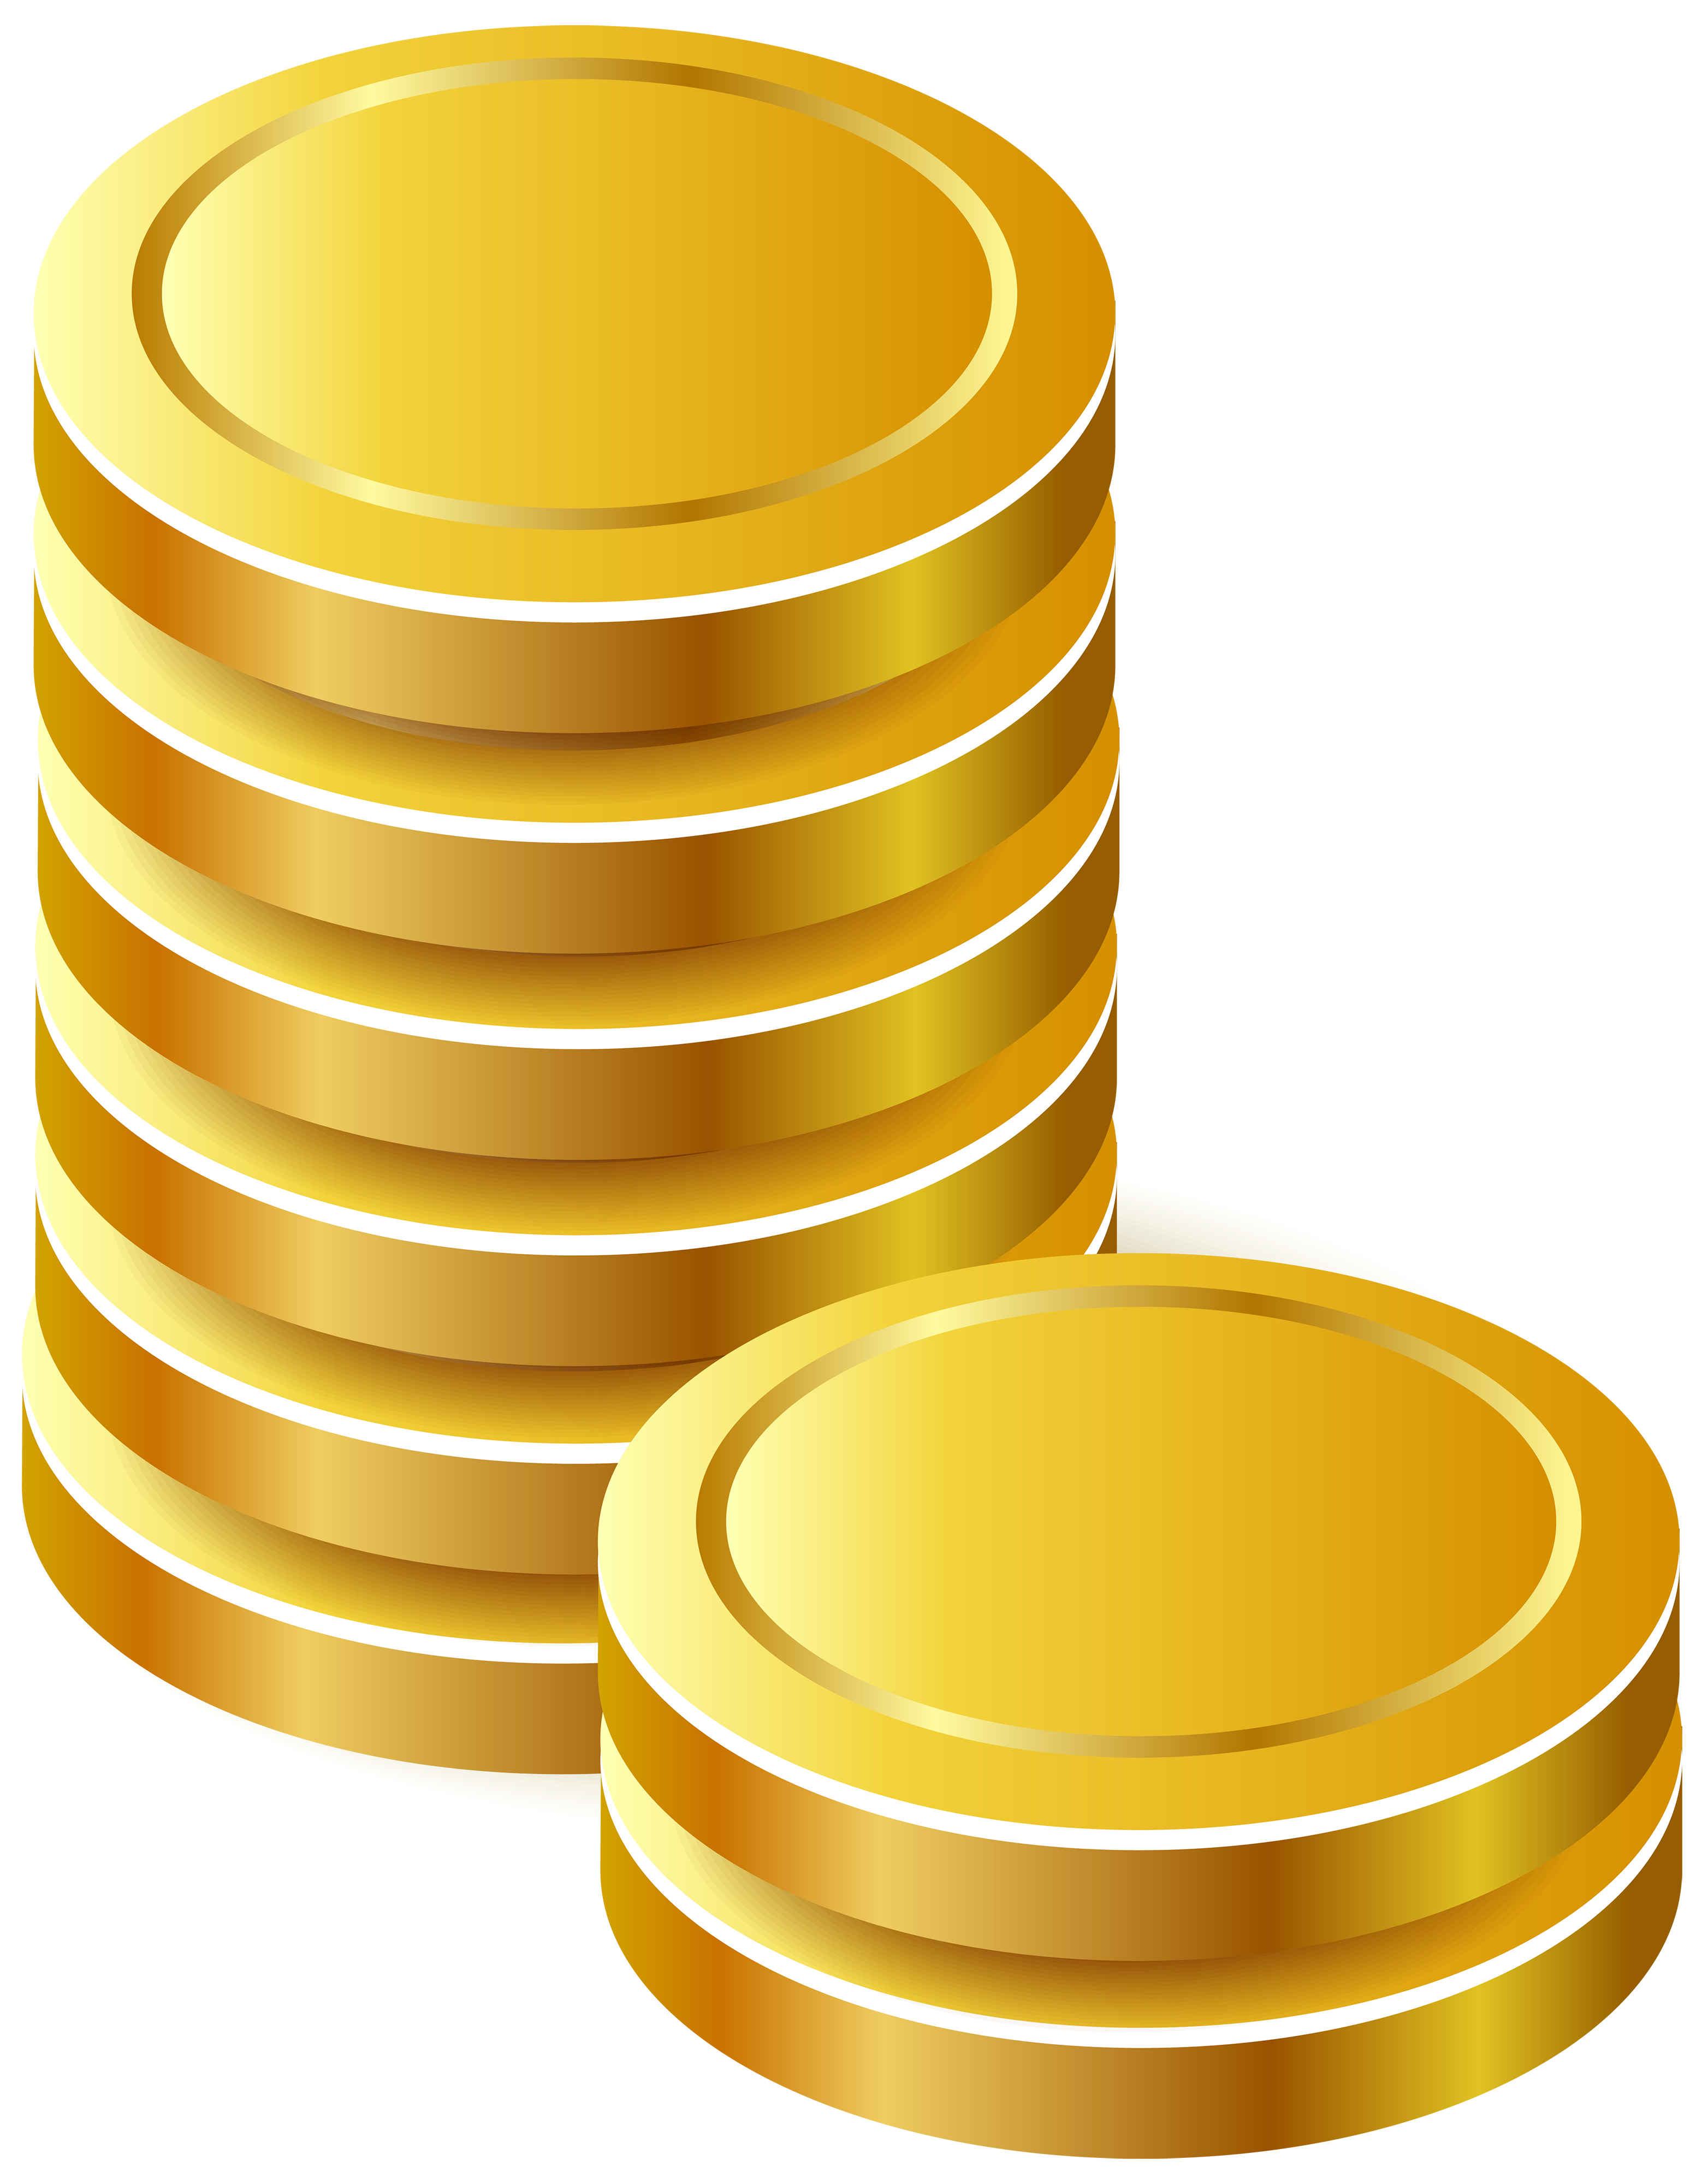 Gold clipart royalty free stock Gold Coins PNG Clipart - Best WEB Clipart royalty free stock